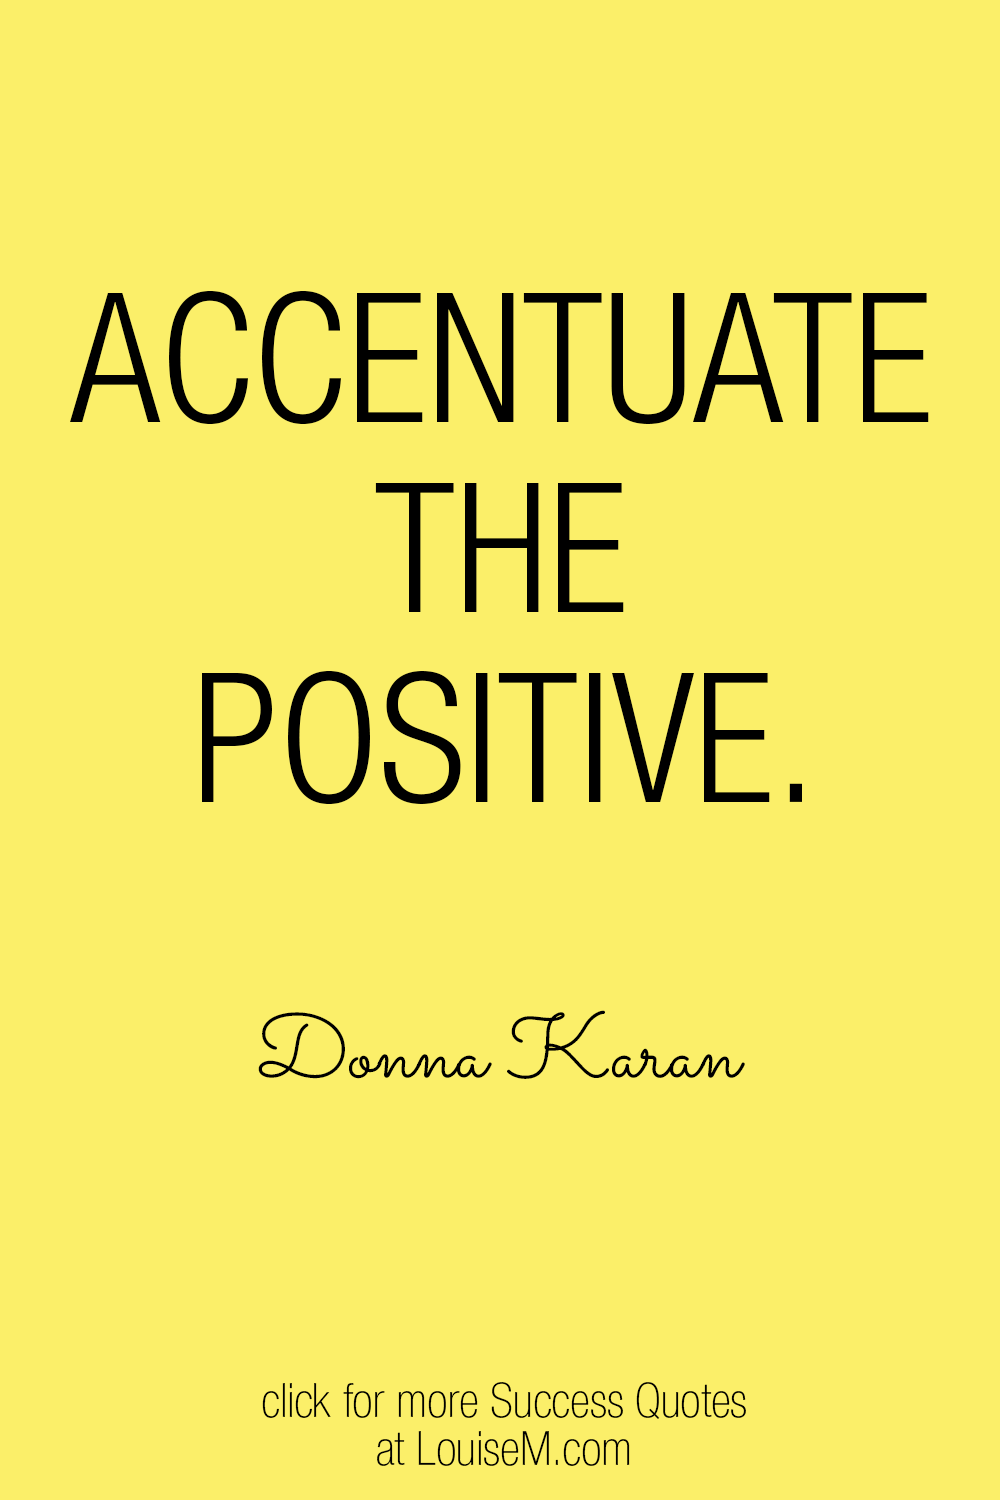 accentuate the positive success quote graphic